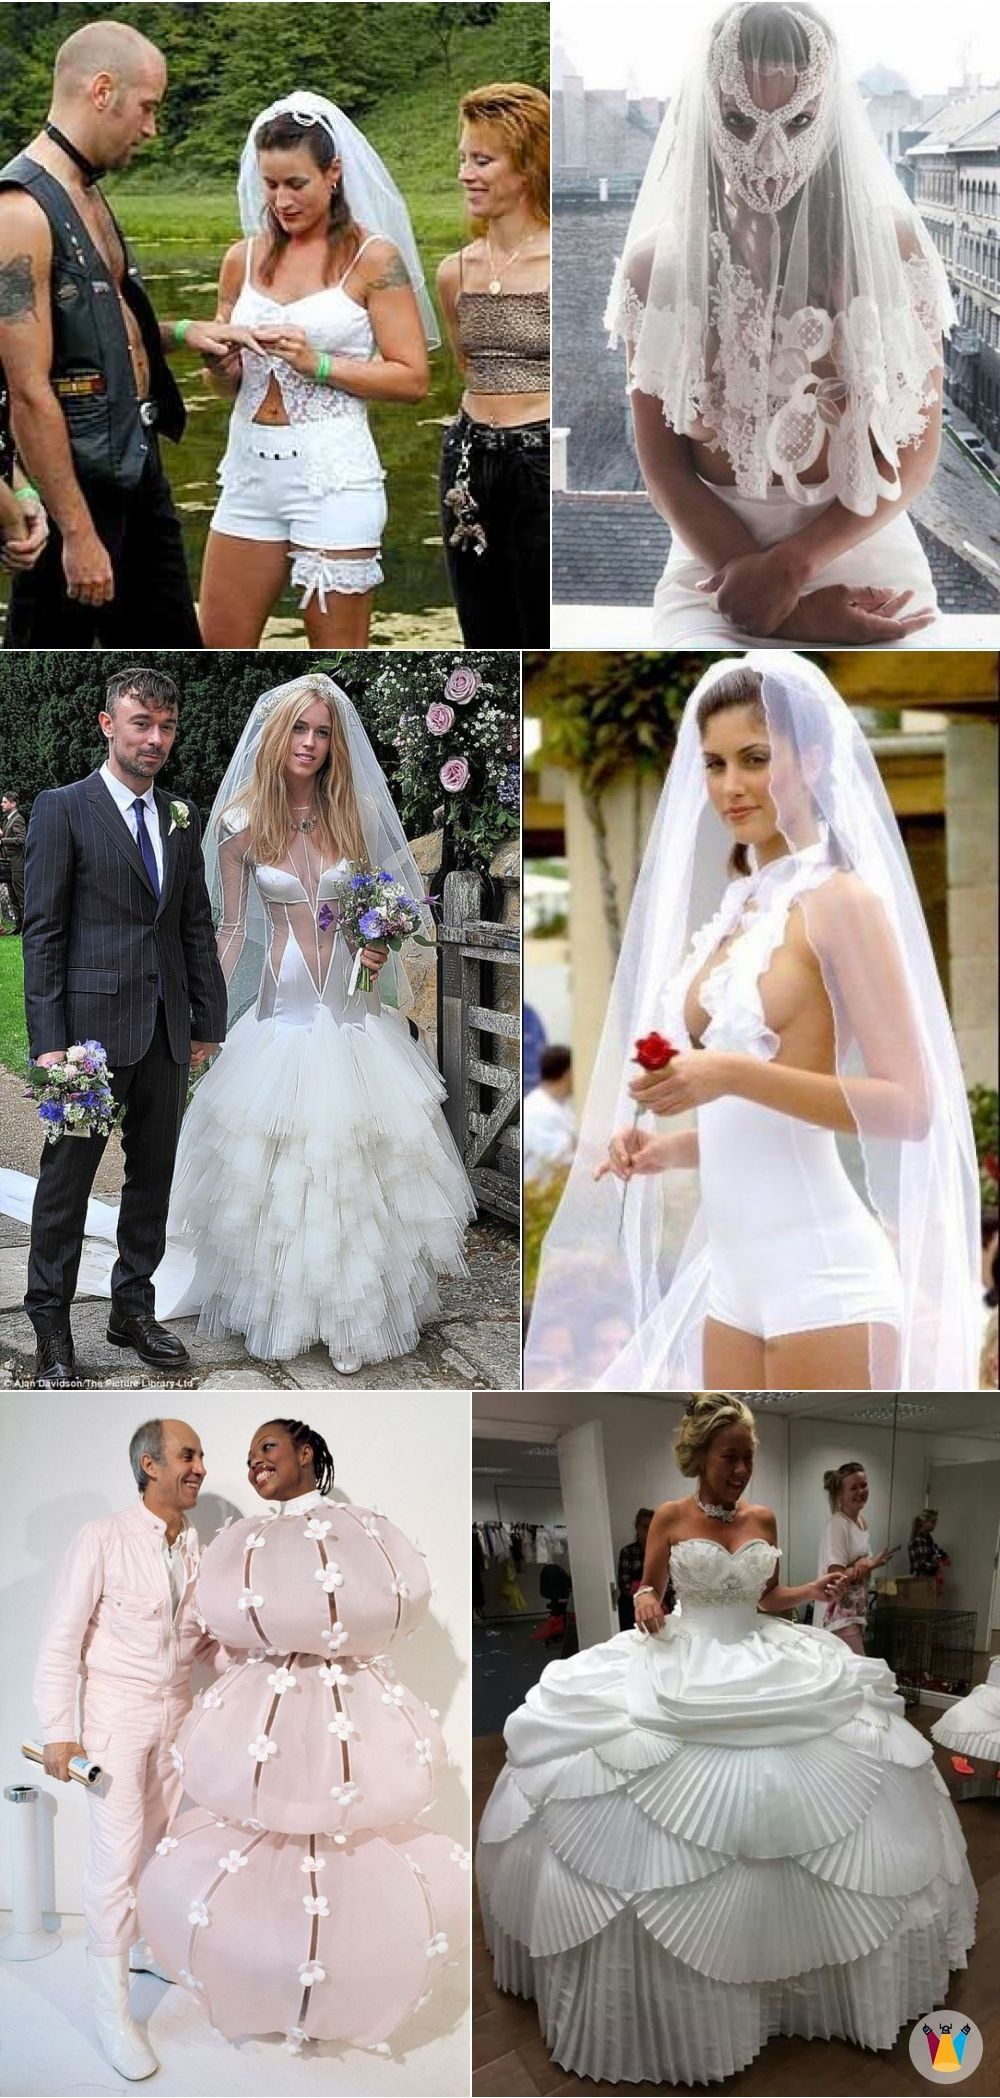 This Post Is About All The People Who Seriously Fail At Picking Out Their Wedding Dress Wedding Dre Wedding Dress Fails Funny Wedding Dresses Wedding Dresses